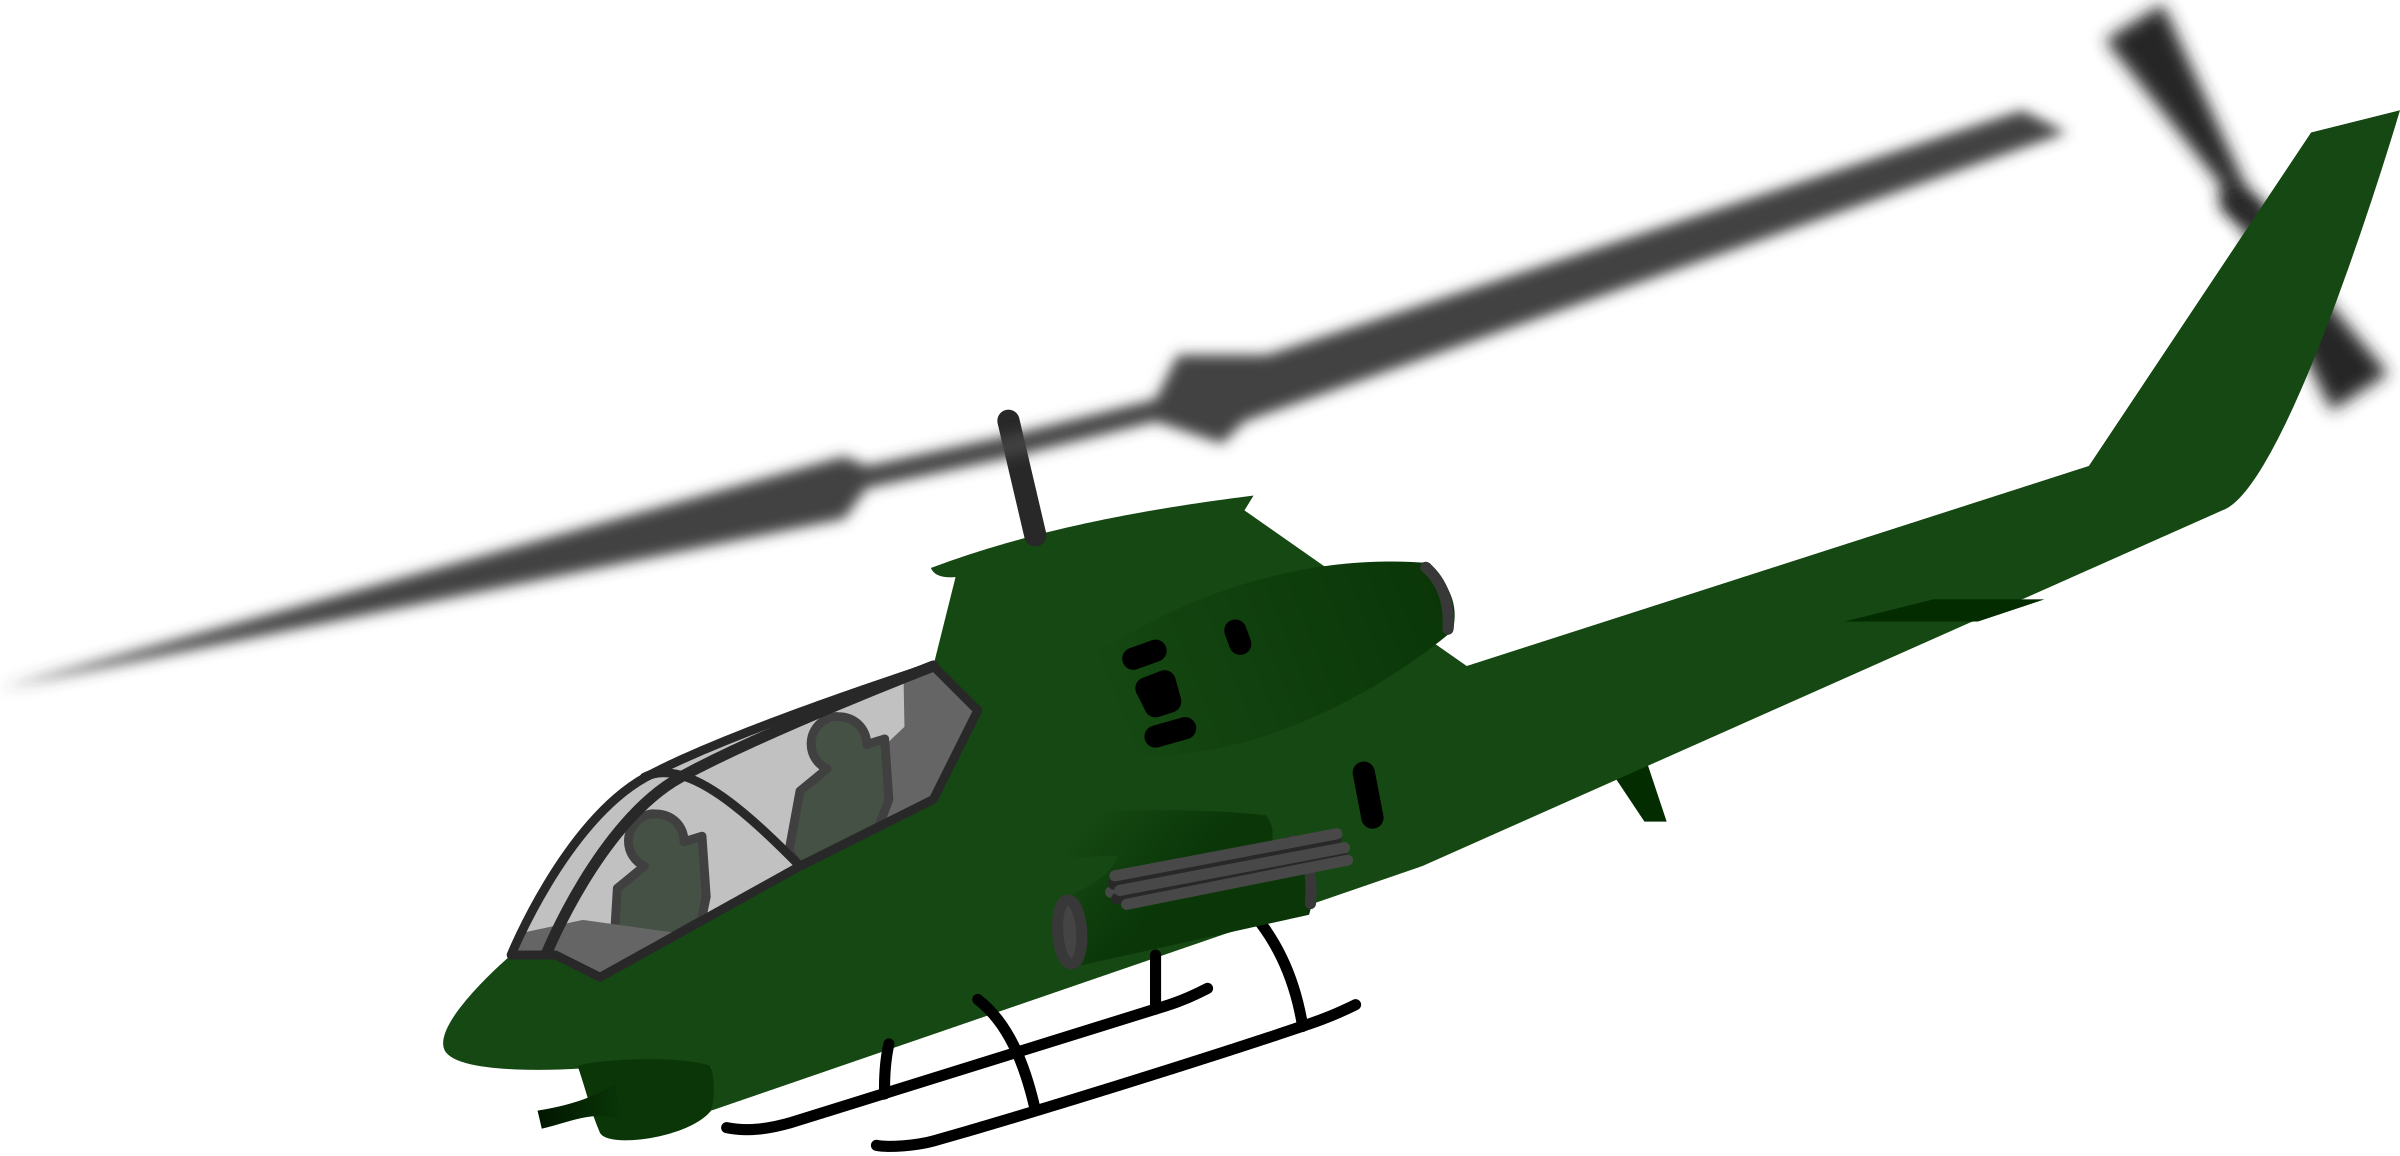 Military clipart helecopter. Animated helicopter